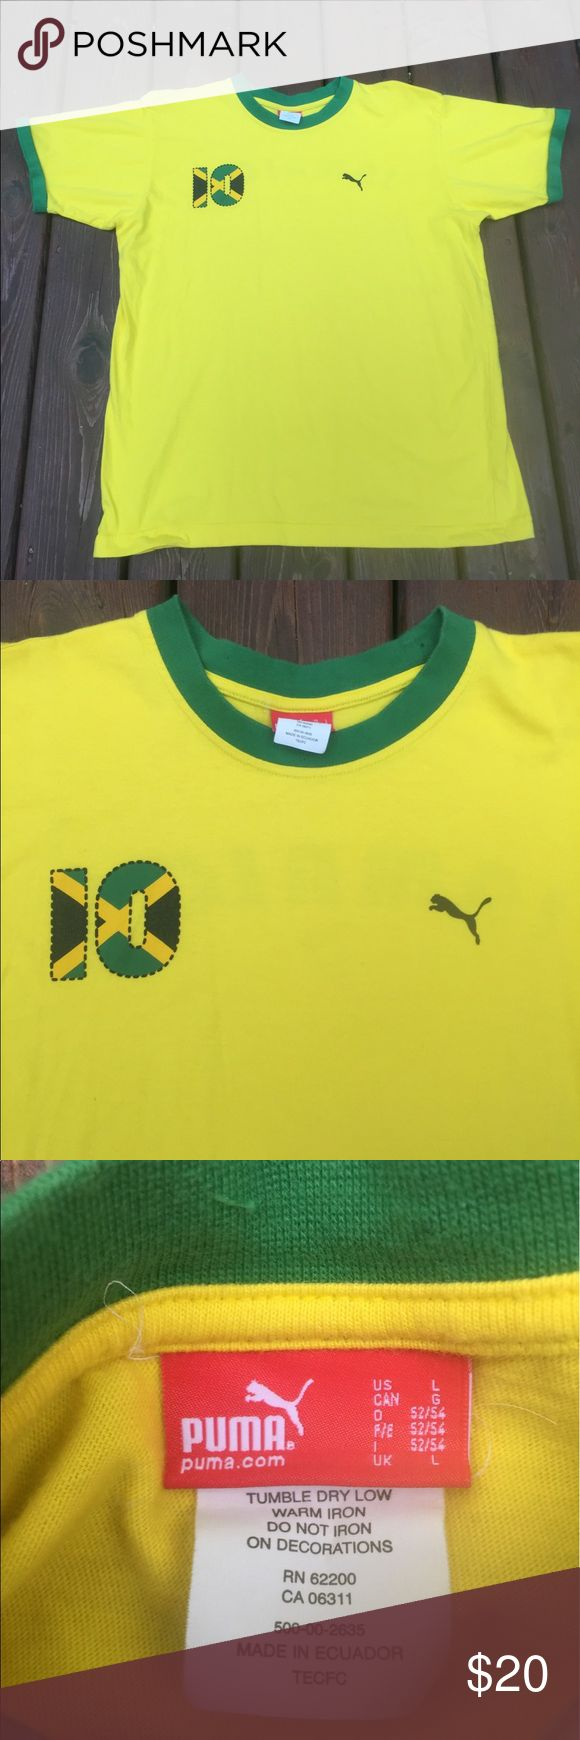 Men's Large Puma Jamaica shirt size Large Excellent condition Puma Shirts Tees - Short Sleeve